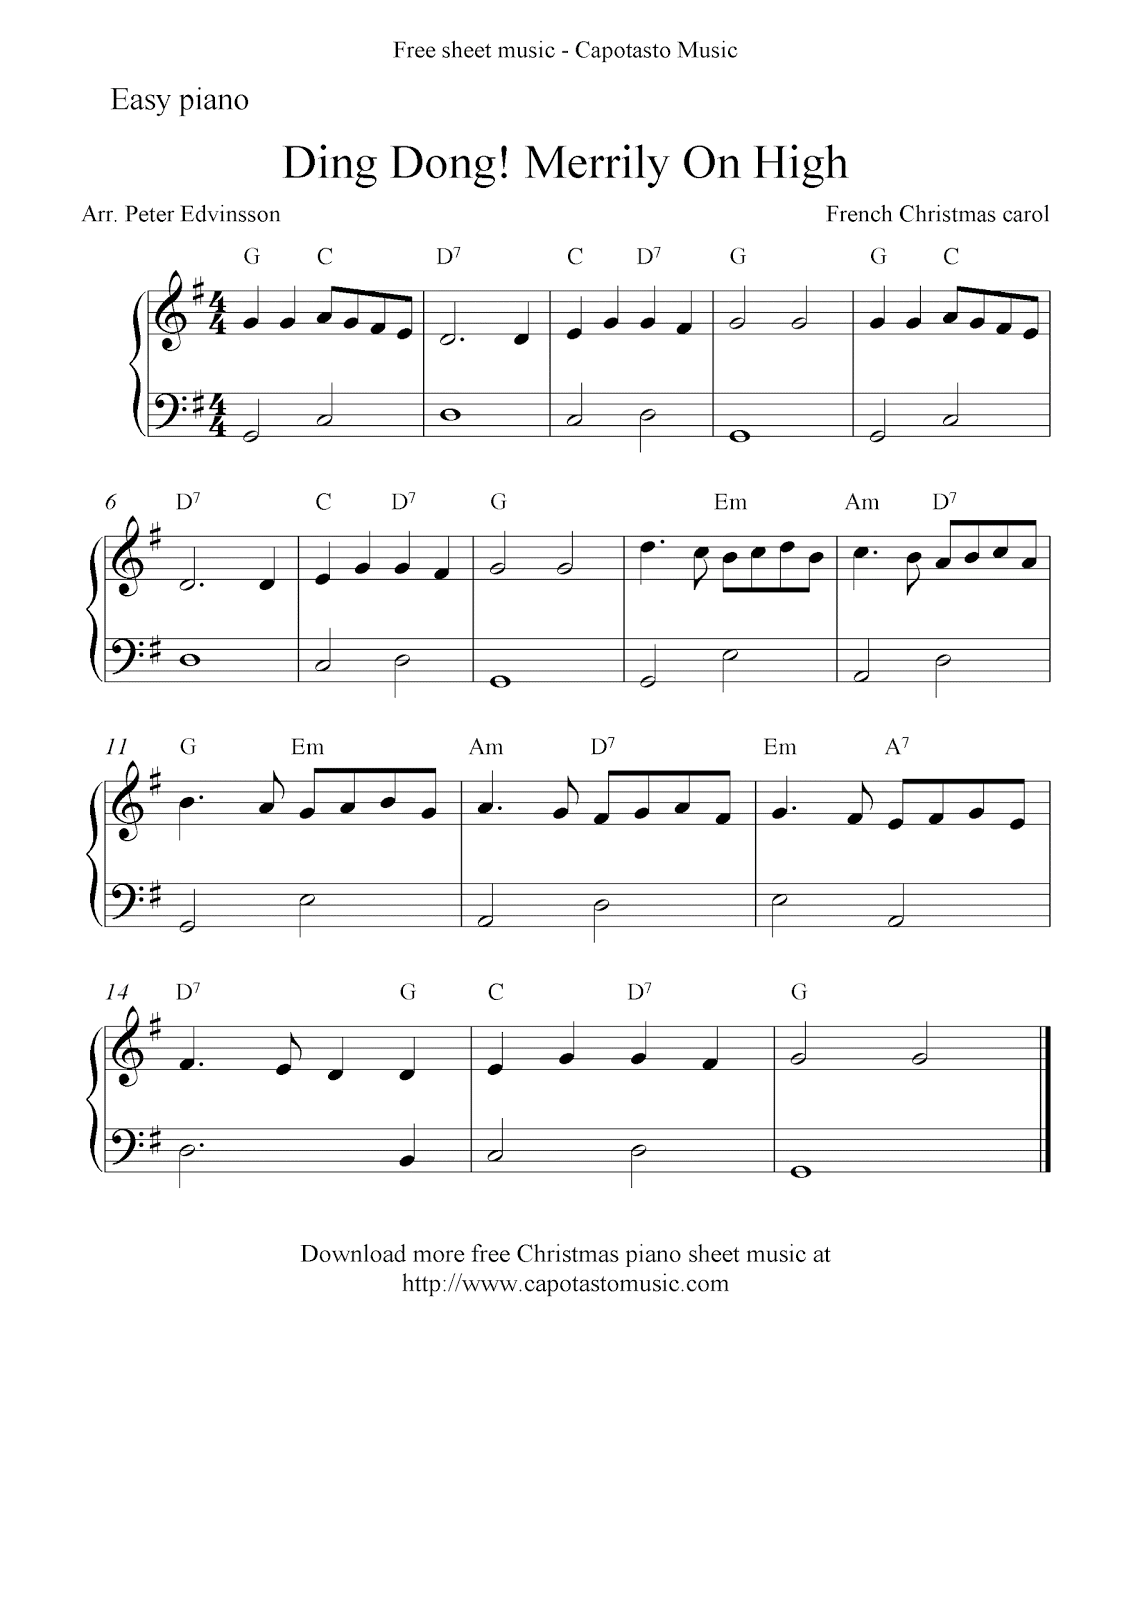 Free christmas sheet music for easy piano ding dong merrily on high